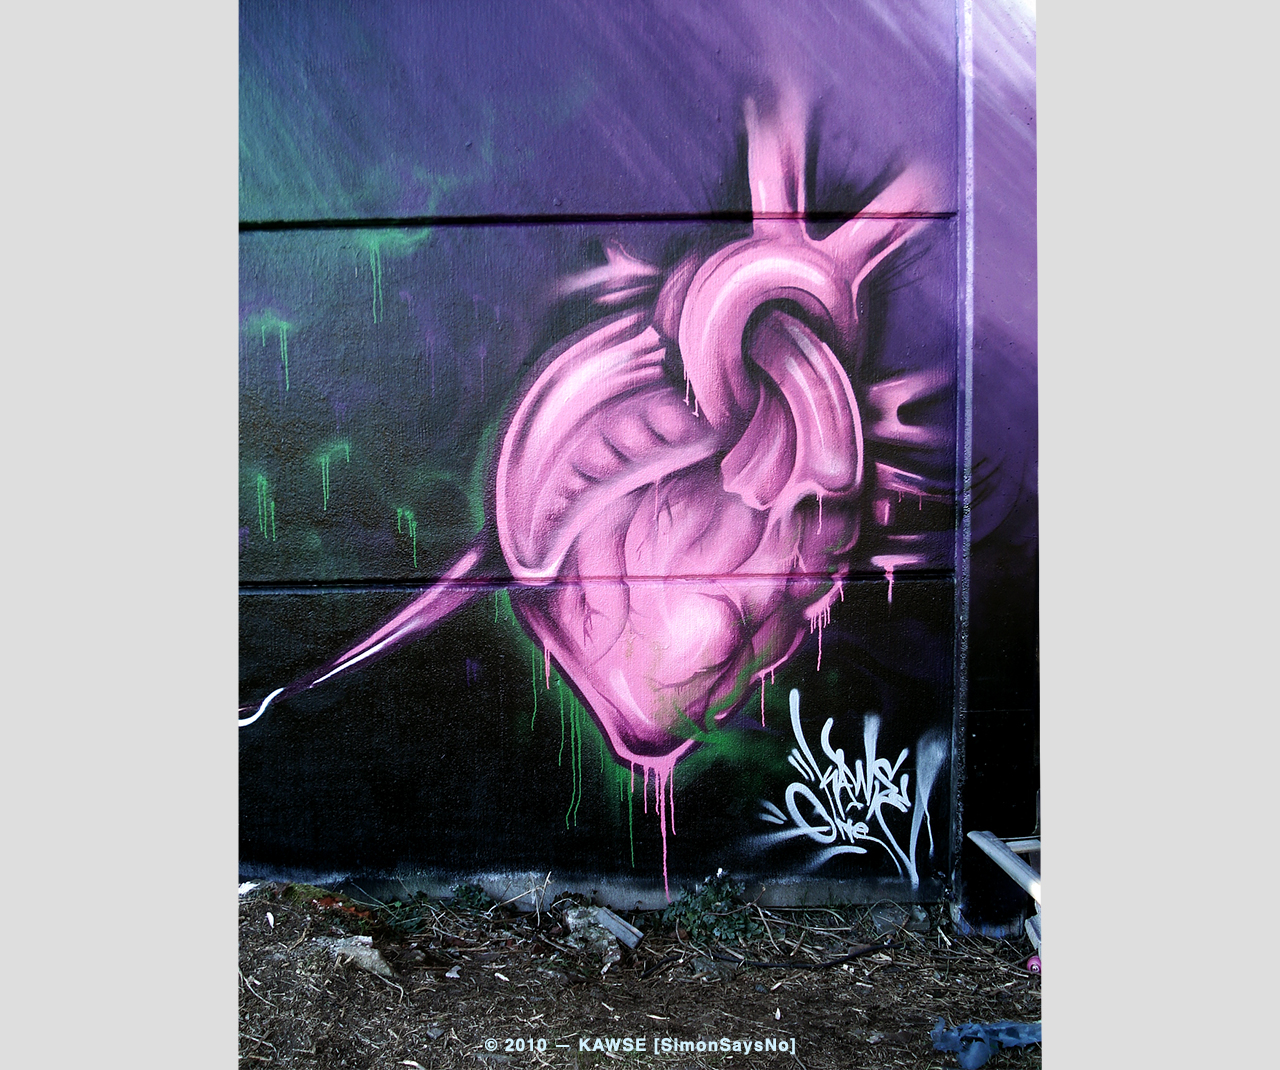 KAWSE 2010 — FROM THE HEART [Illustration]